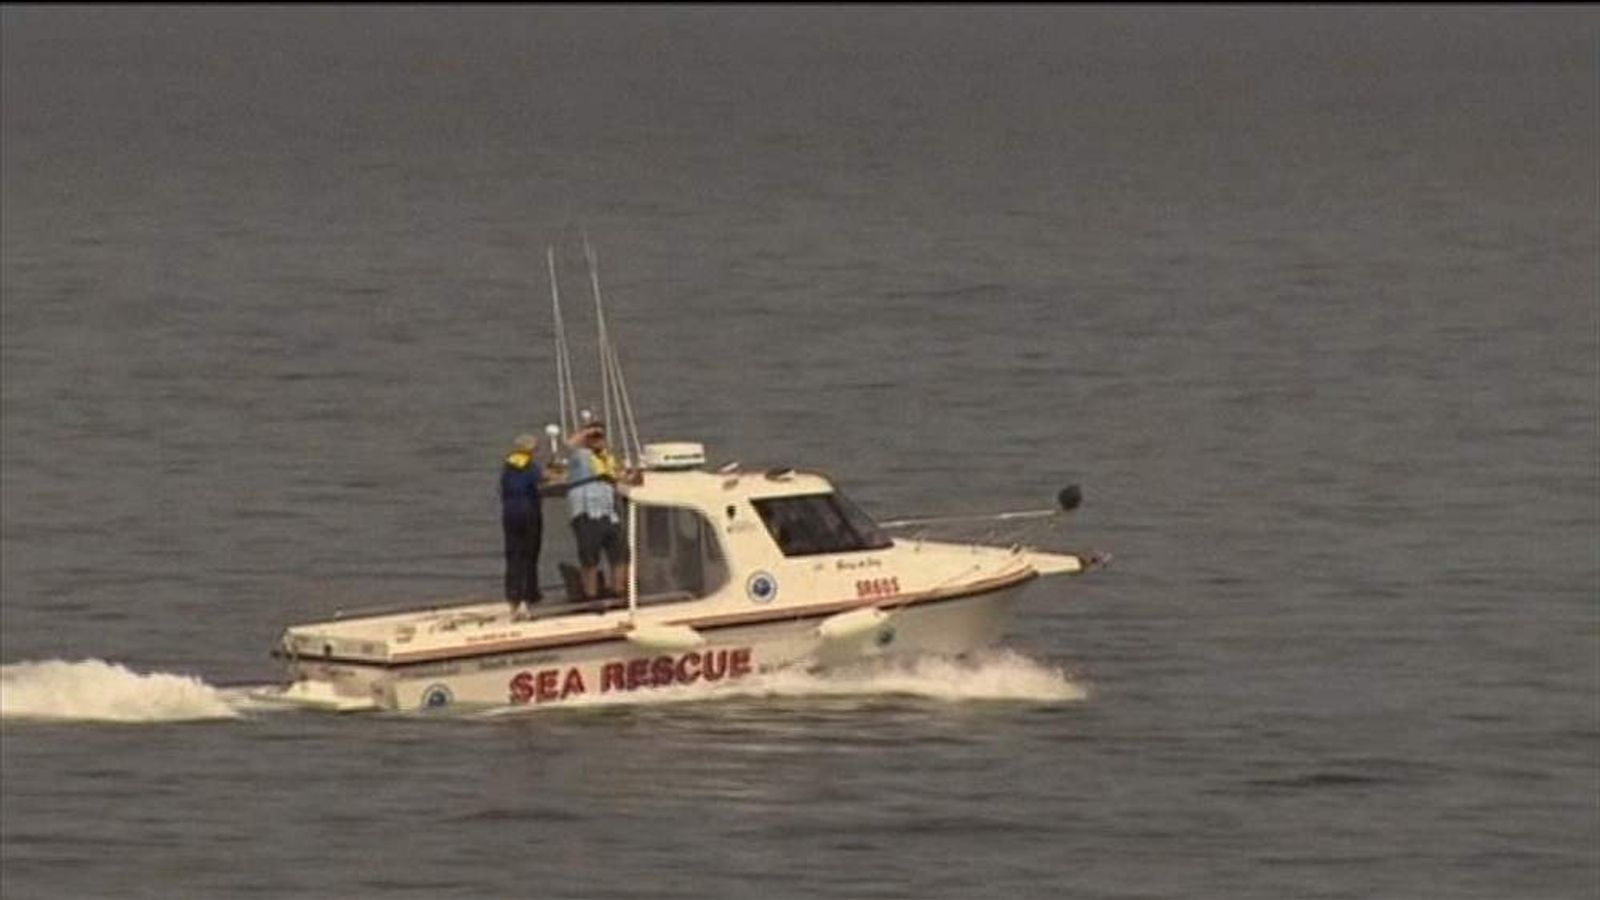 A sea rescue boat searches for a man killed by a shark while spear fishing.